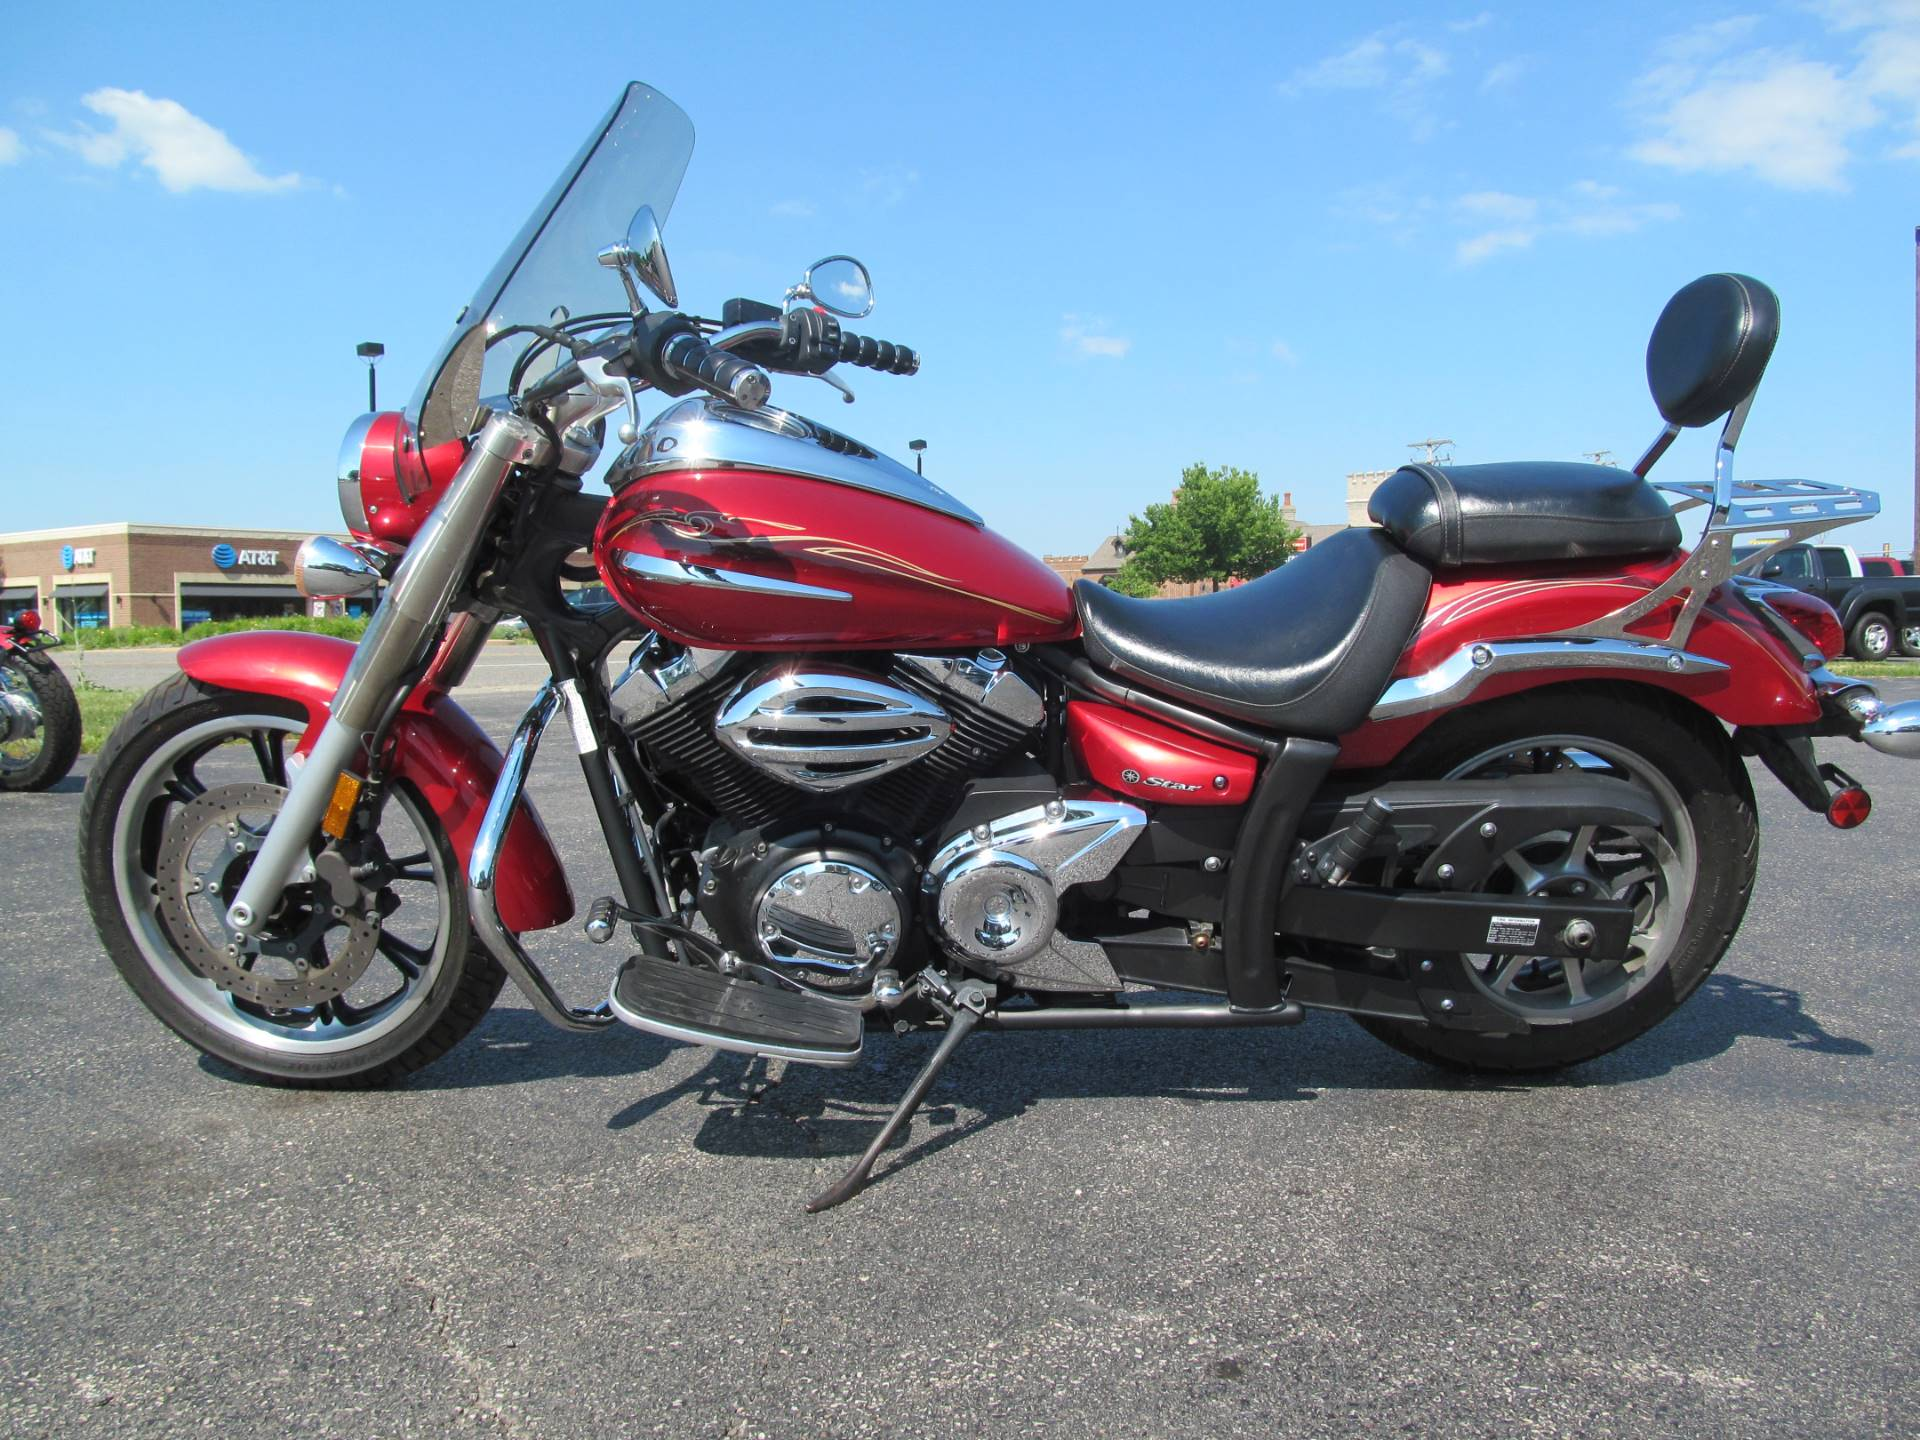 2009 Yamaha V Star 950 in Crystal Lake, Illinois - Photo 2